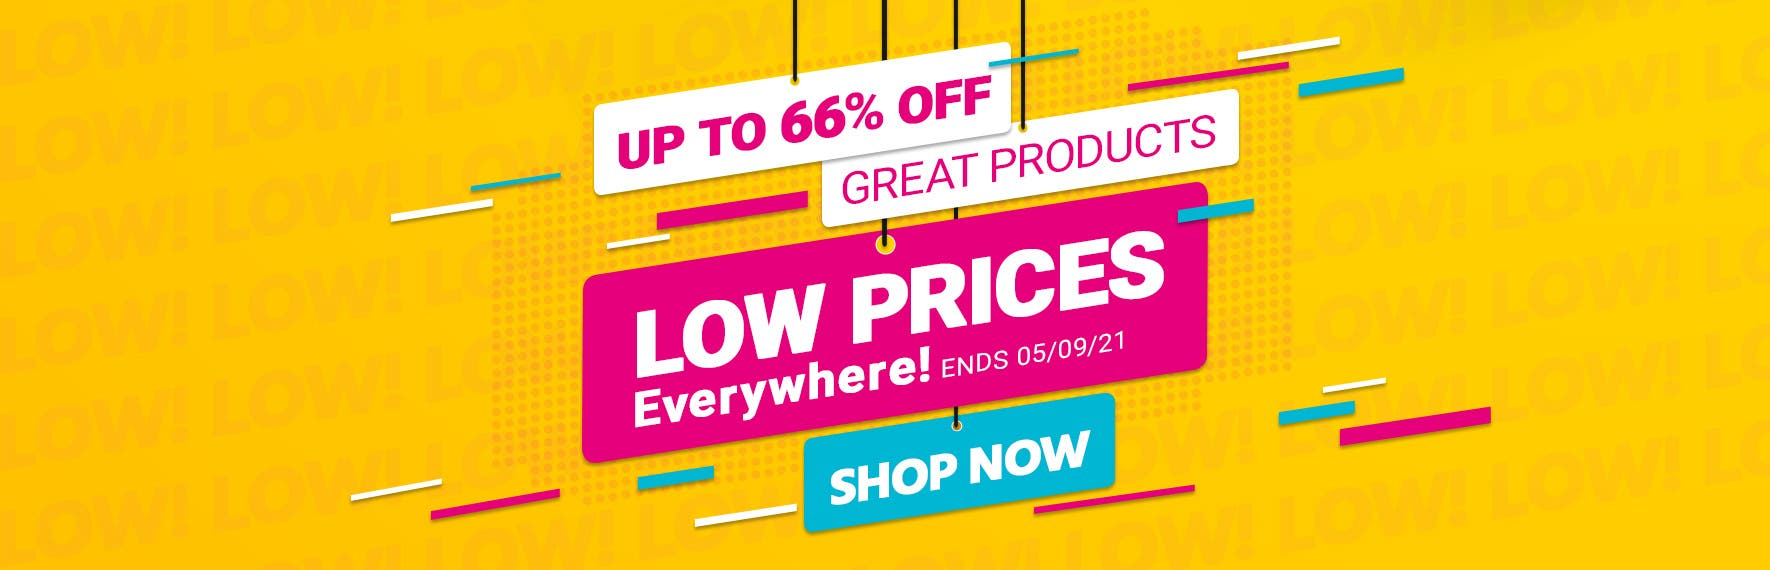 Low Prices Everywhere! Up to 66% off great products Shop Now